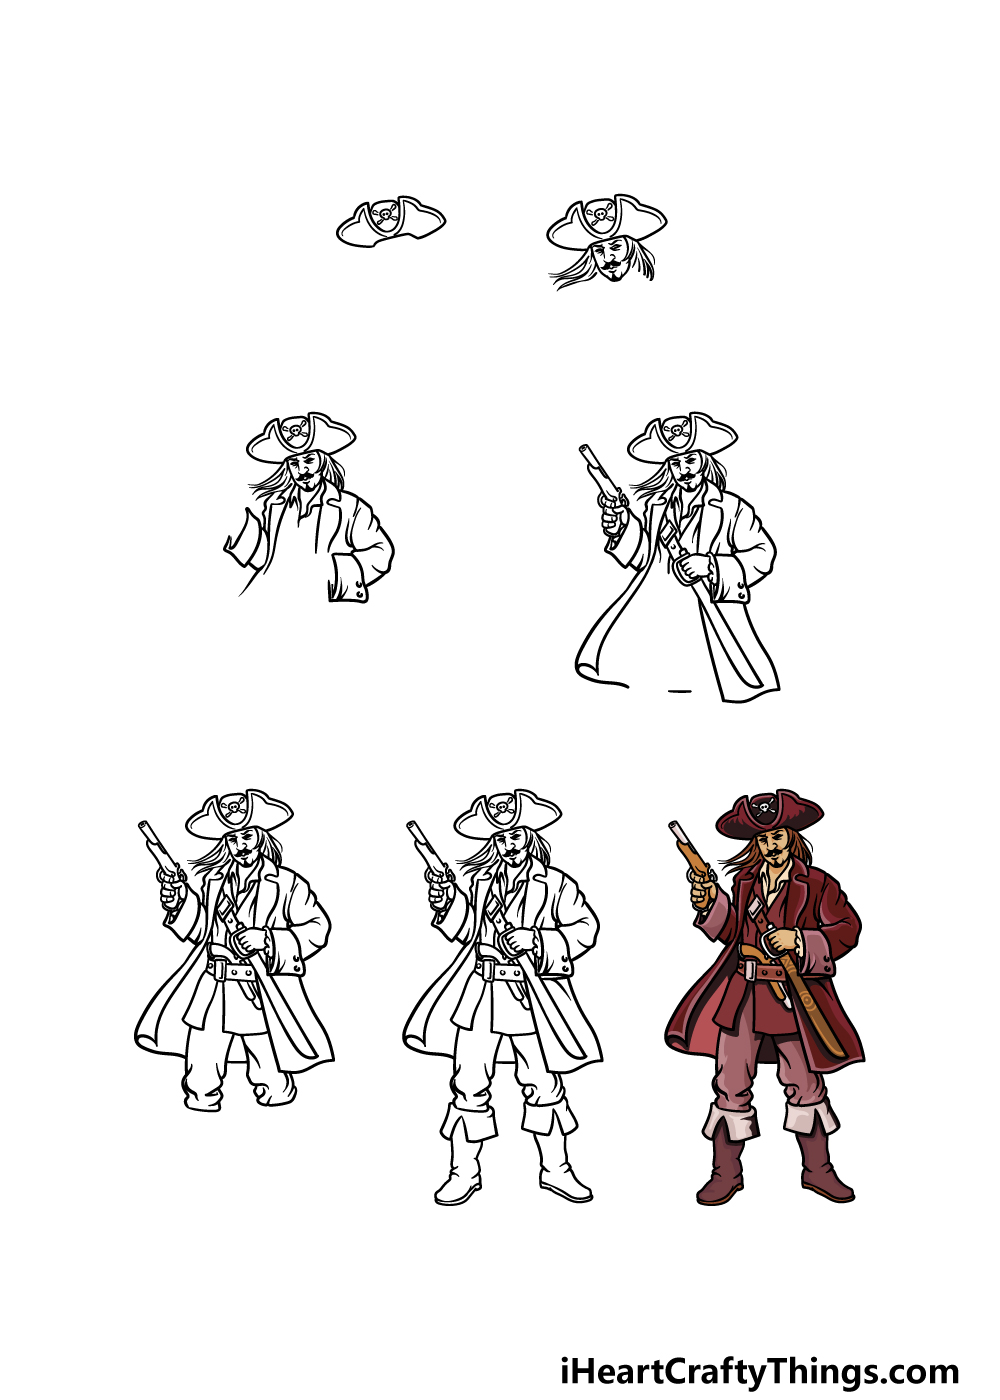 how to draw a pirate in 7 steps